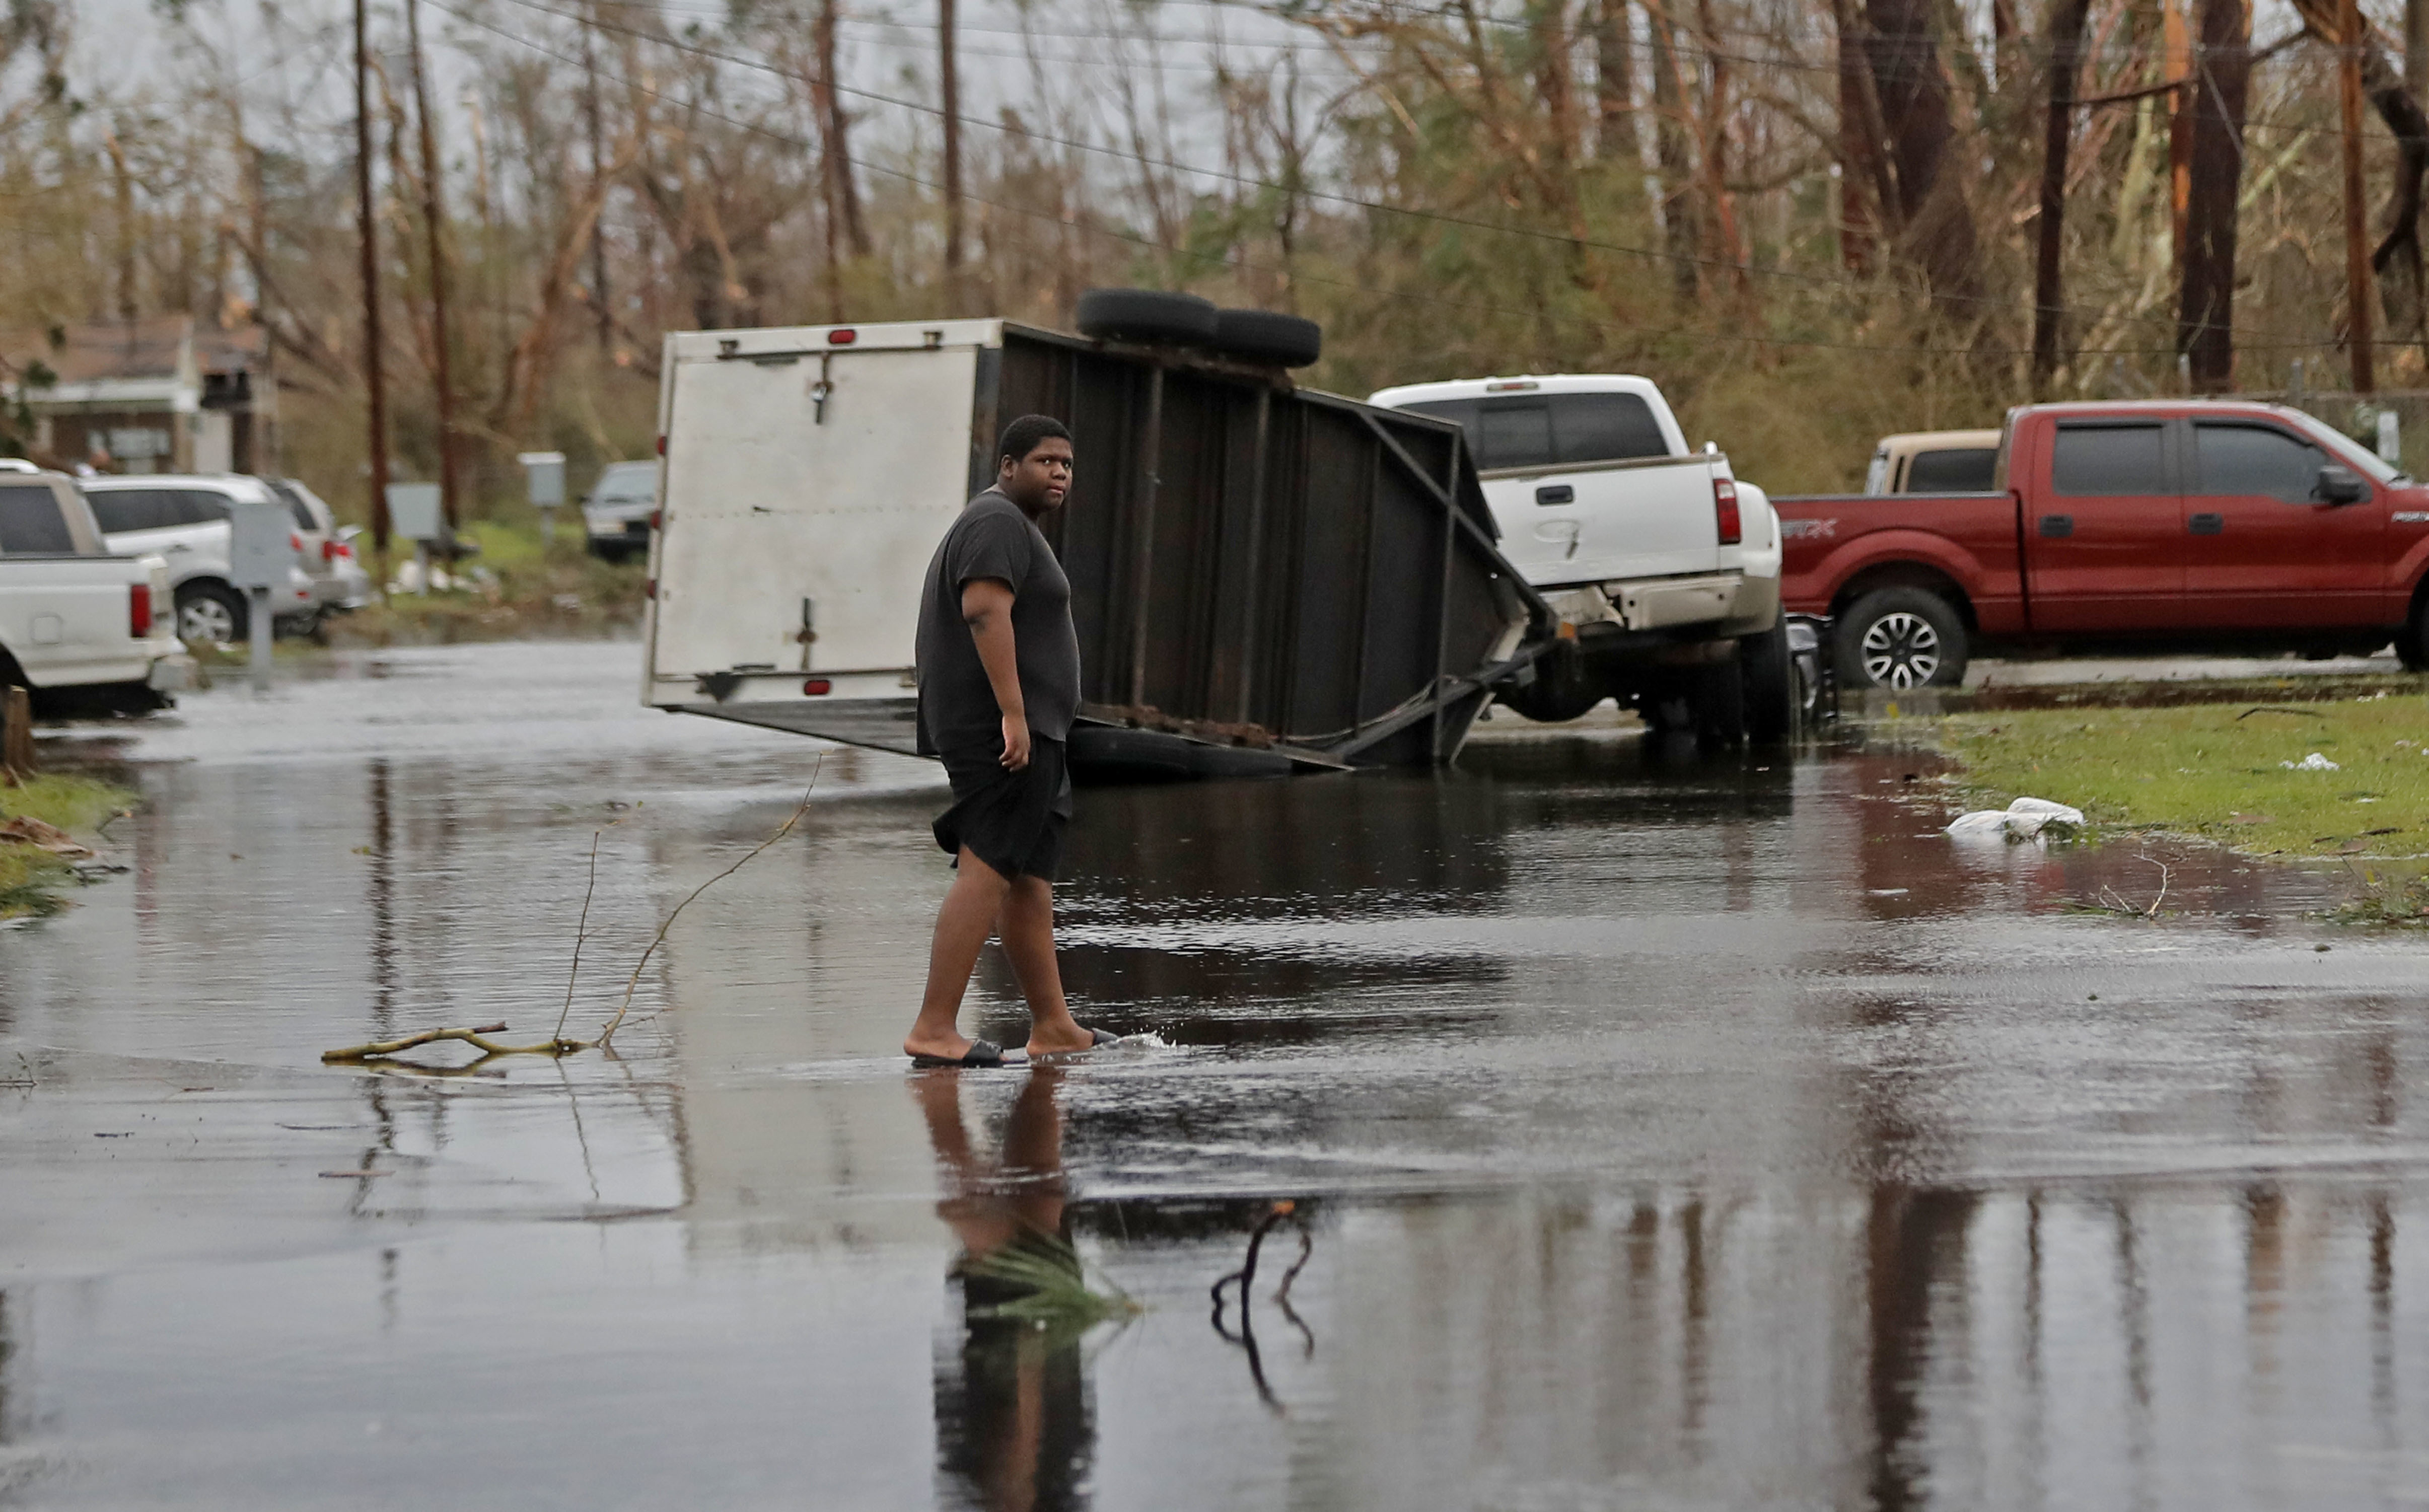 A man walks in the street of his heavily damaged neighborhood in the aftermath of Hurricane Michael in Panama City, Fla., Wednesday, Oct. 10, 2018. Supercharged by abnormally warm waters in the Gulf of Mexico, Hurricane Michael slammed into the Florida Panhandle with terrifying winds of 155 mph Wednesday, splintering homes and submerging neighborhoods. (AP Photo/Gerald Herbert)